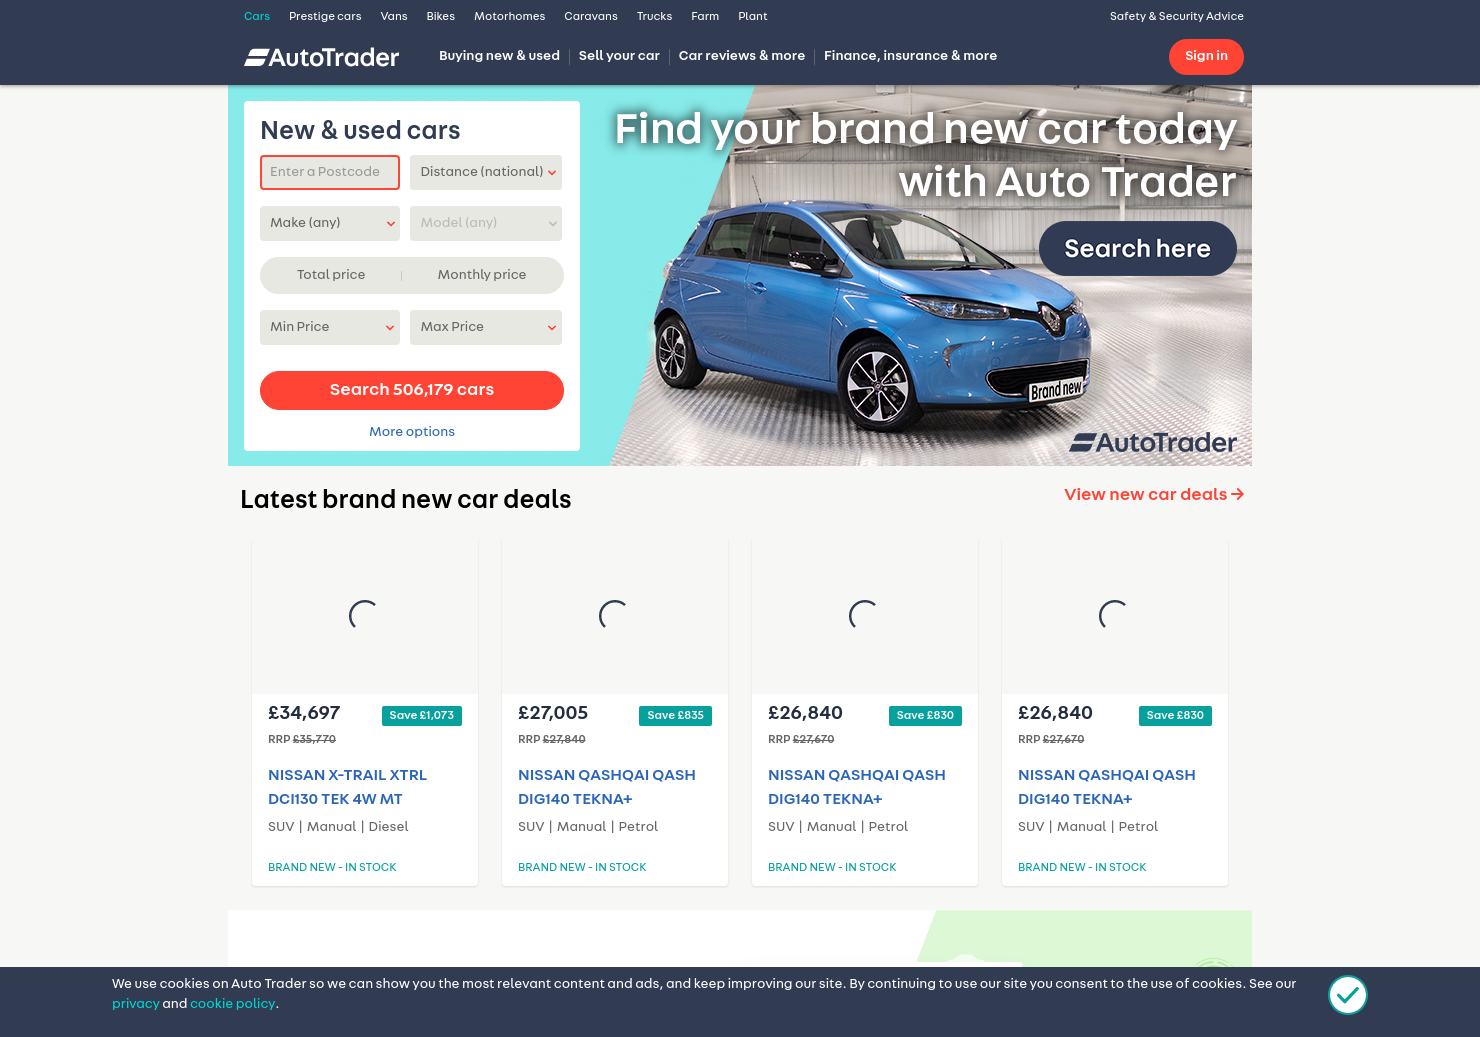 Auto Trader Home Page